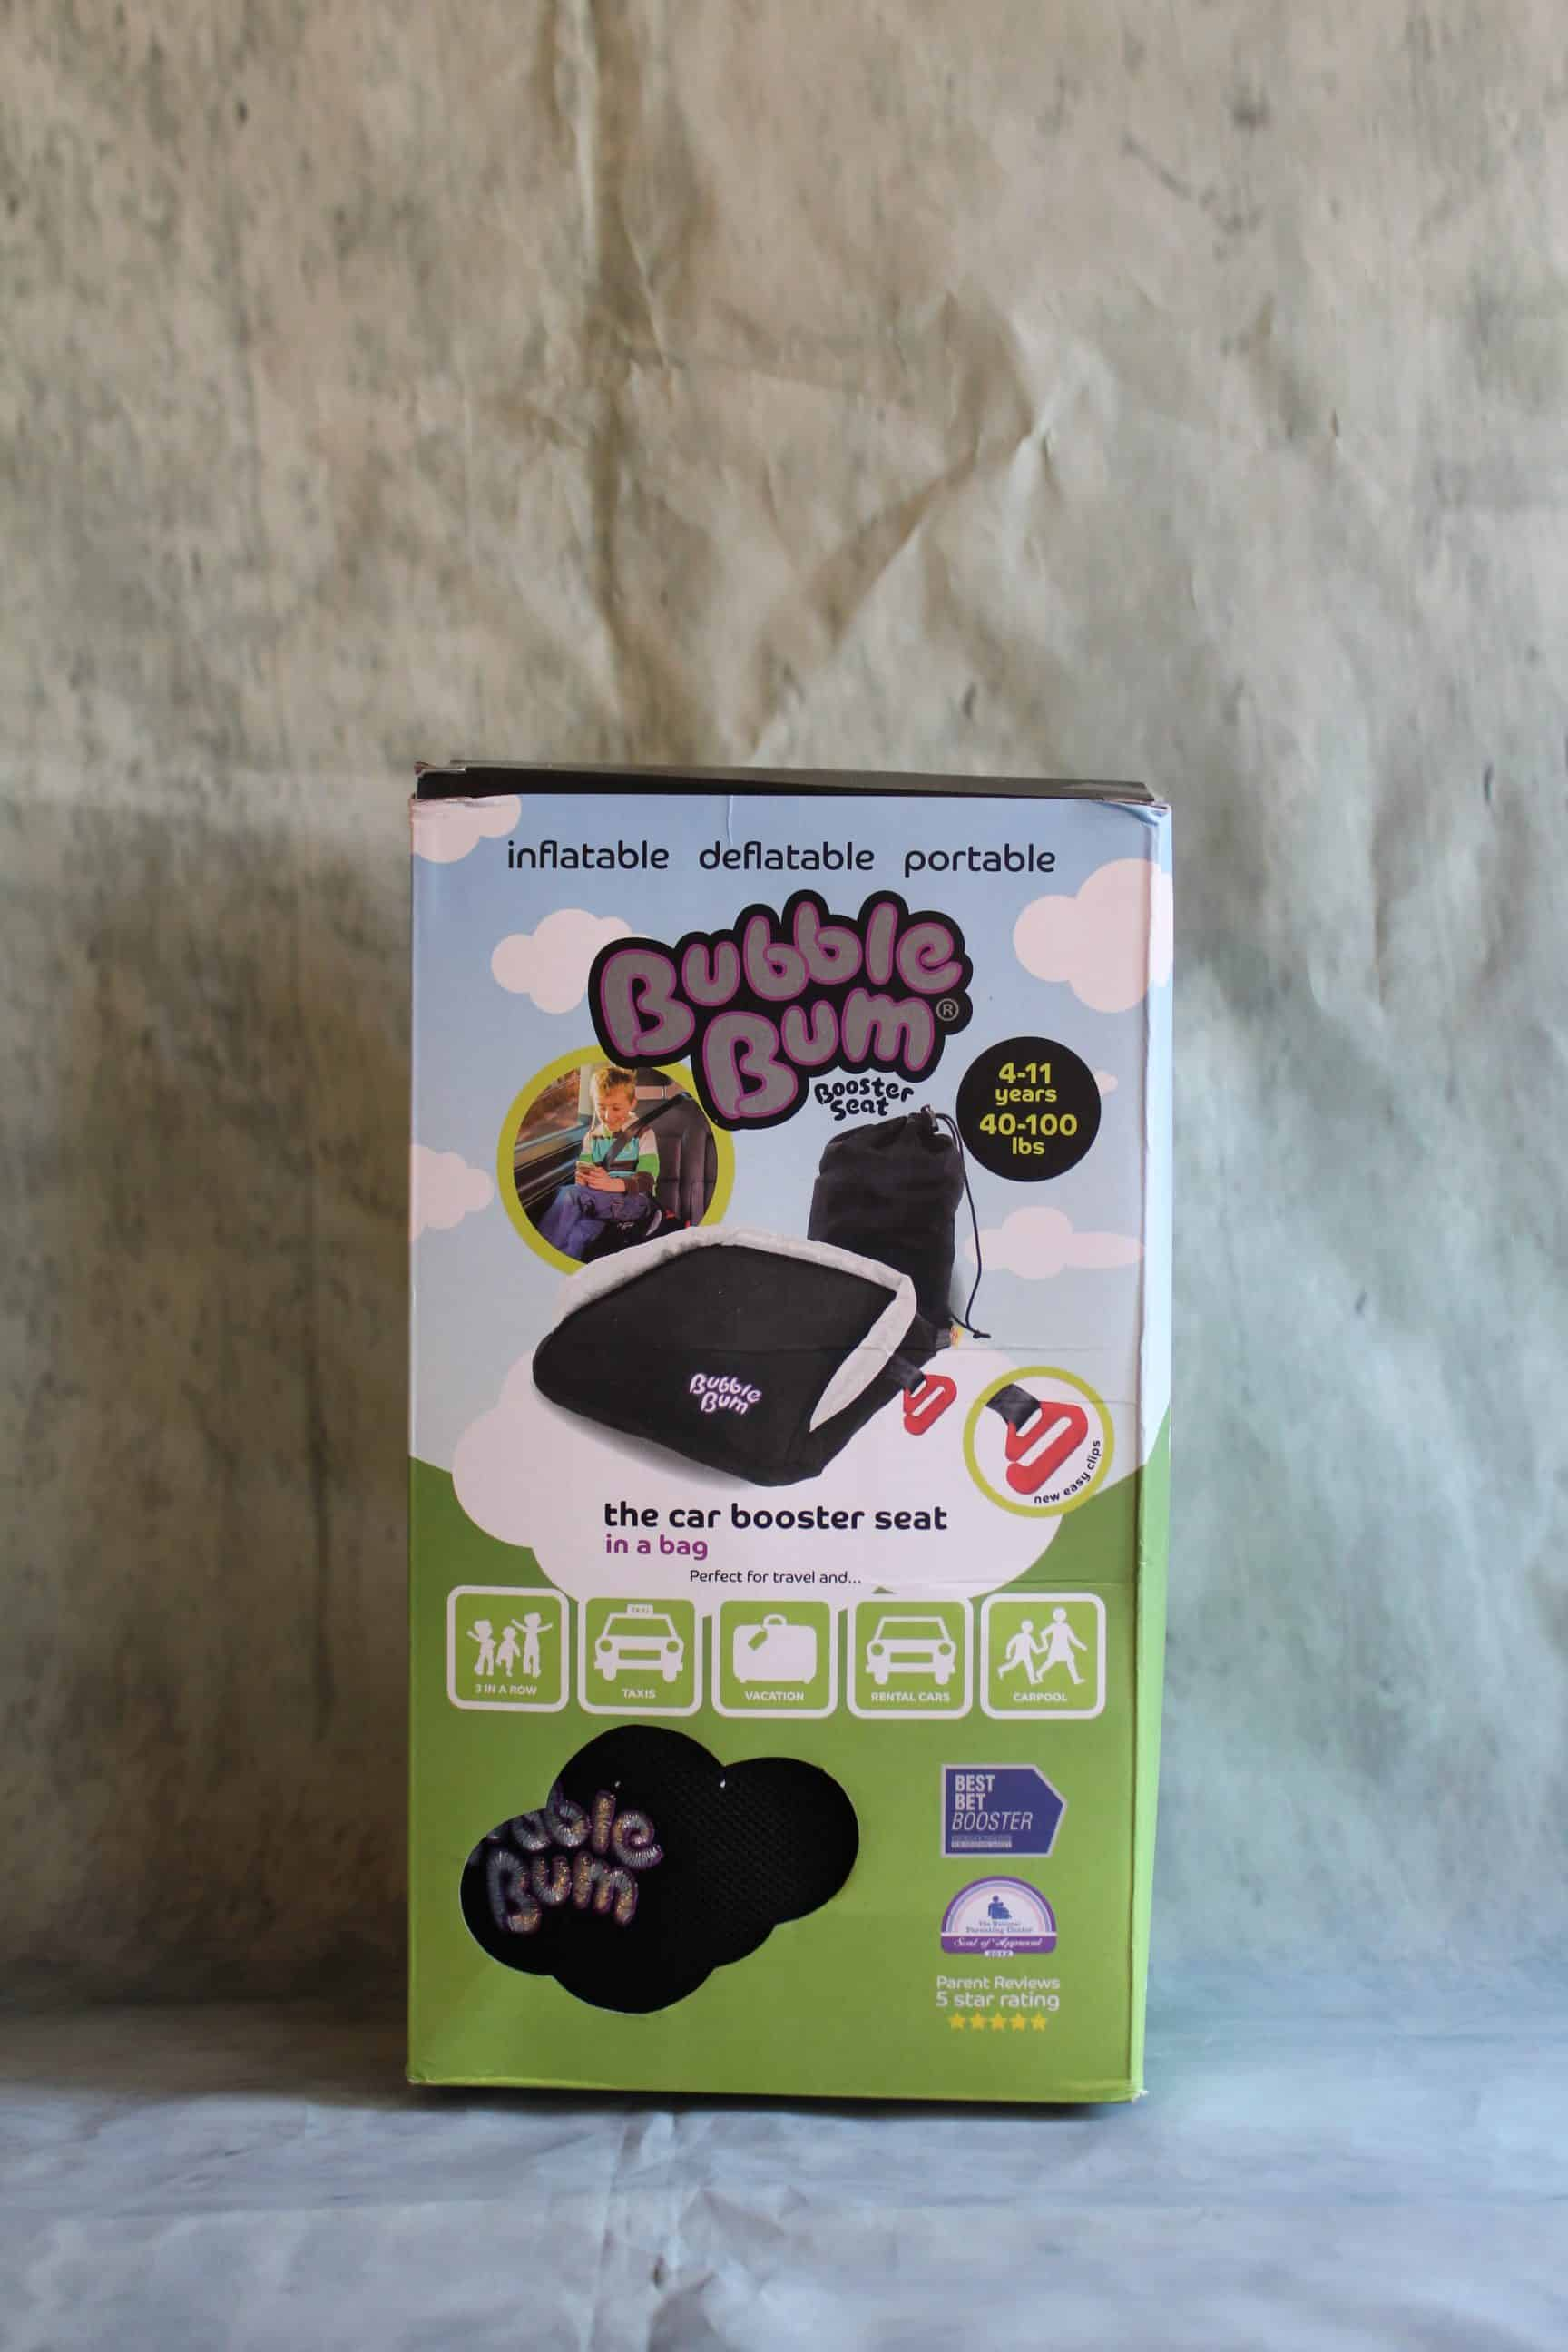 bubblebum instructions